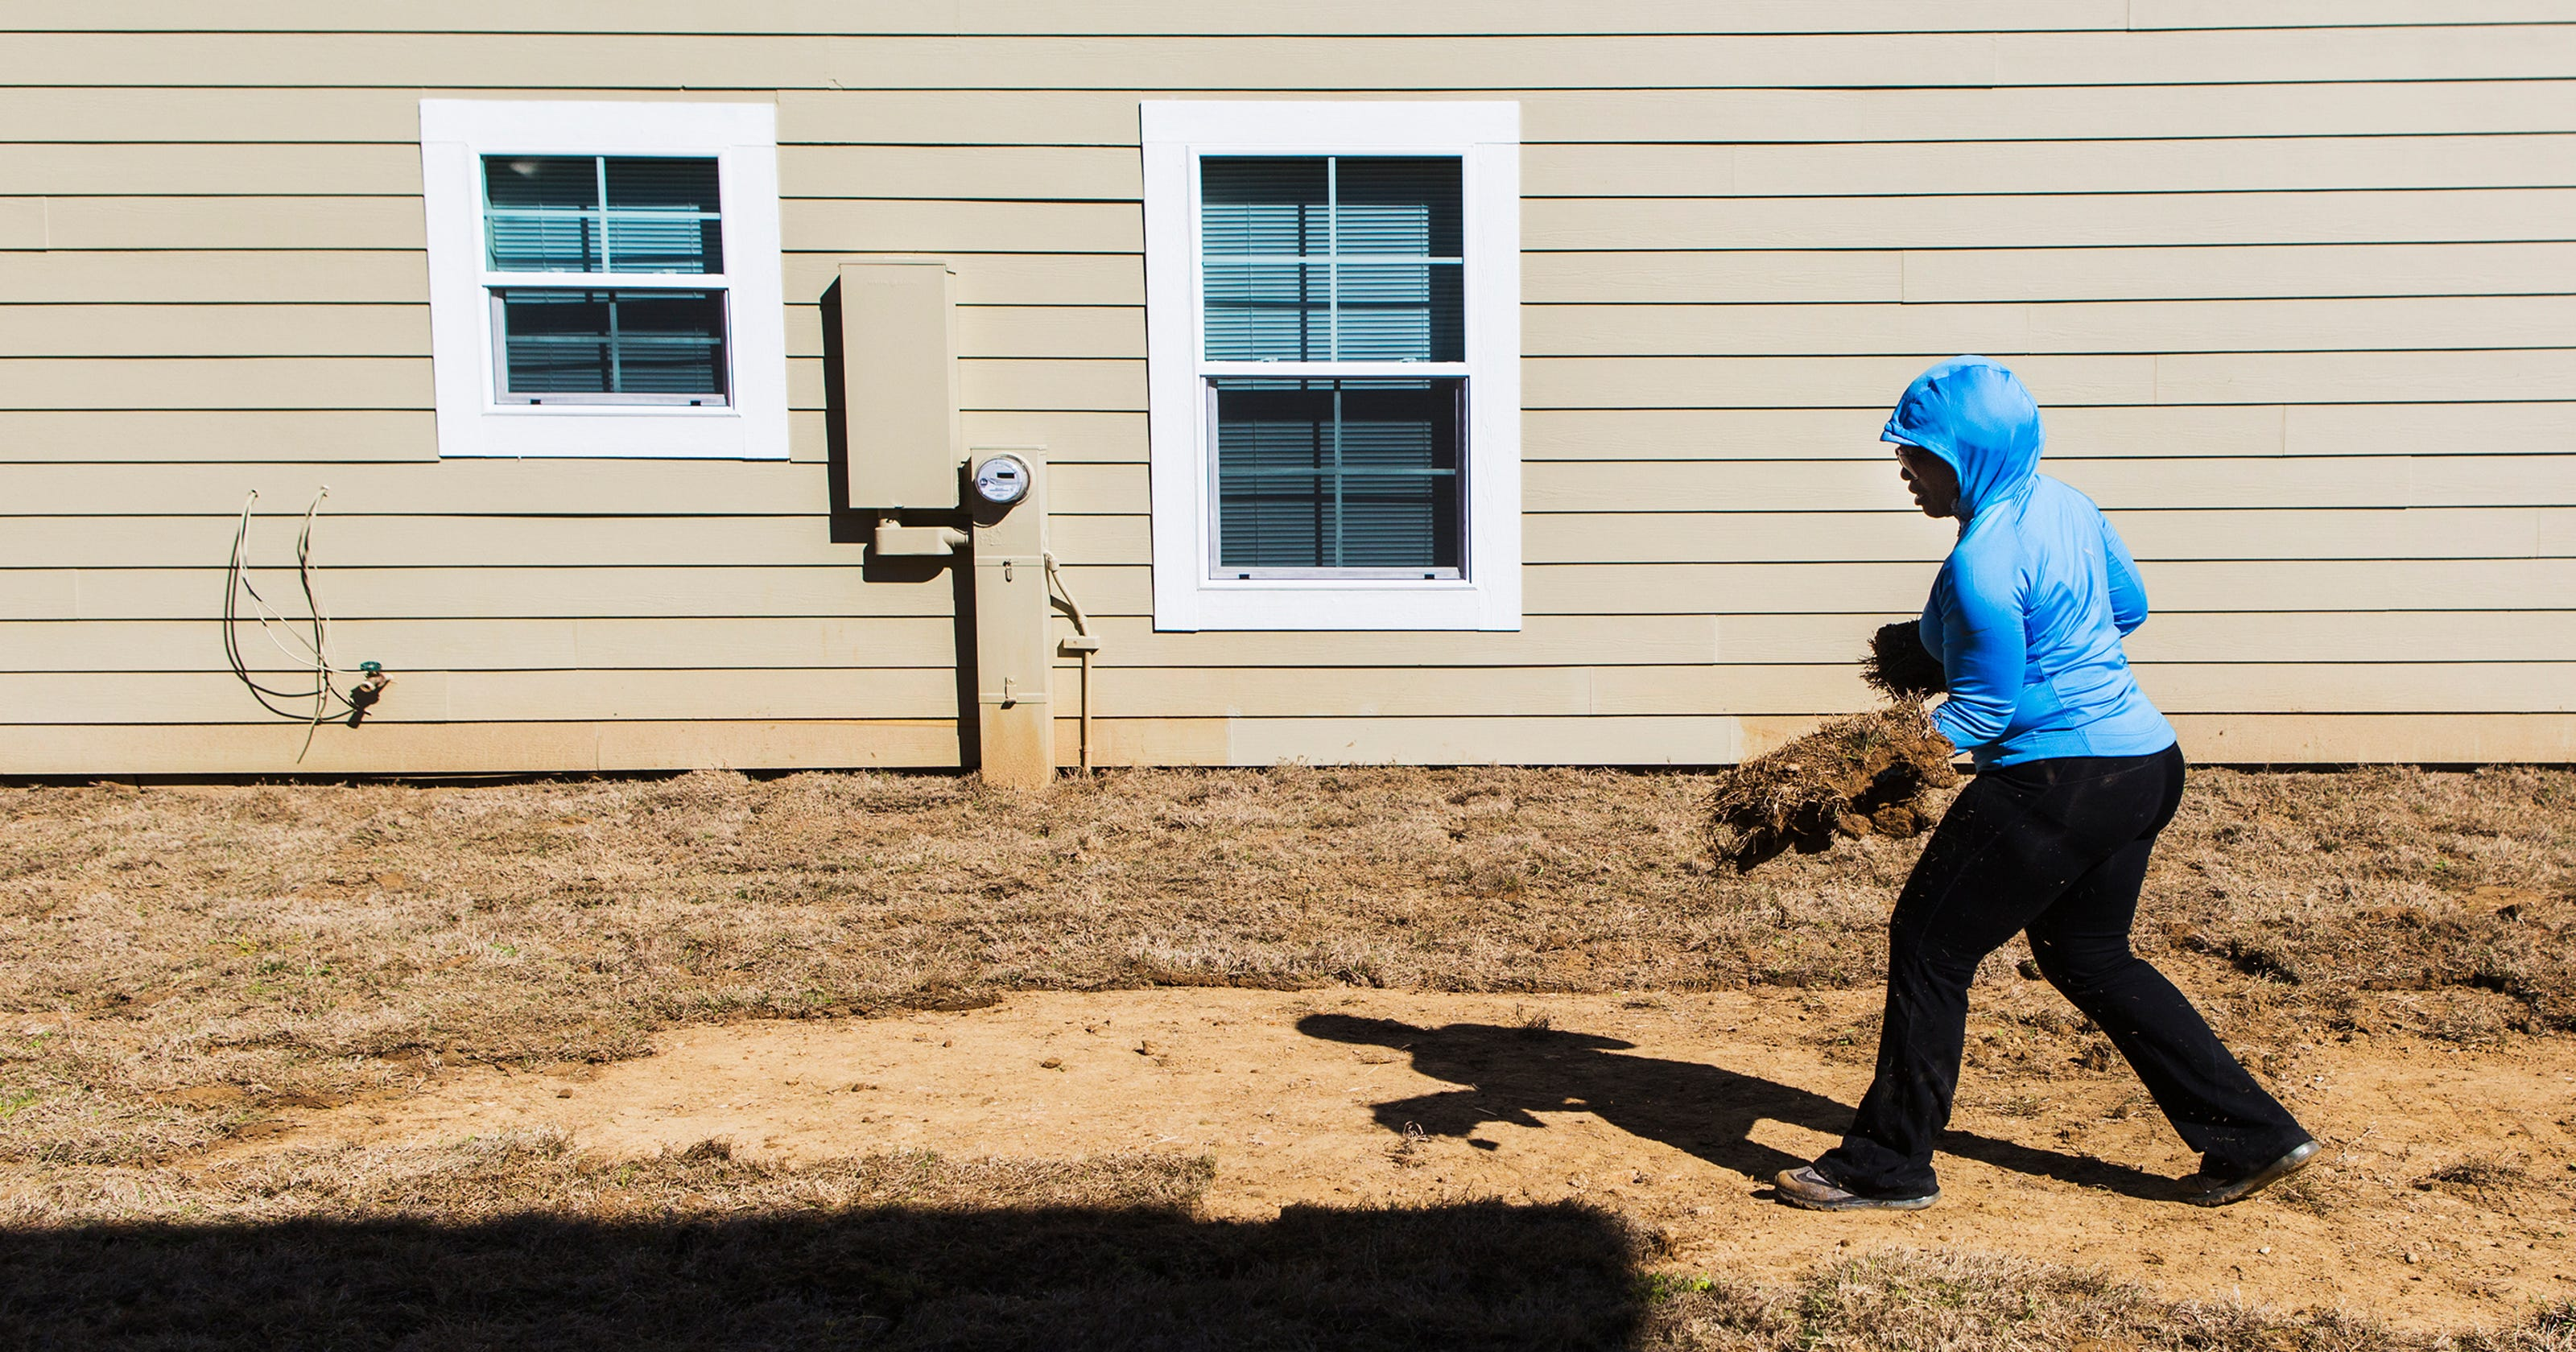 Thda Program Gives Nonprofits Cash Incentive To Build Affordable Housing